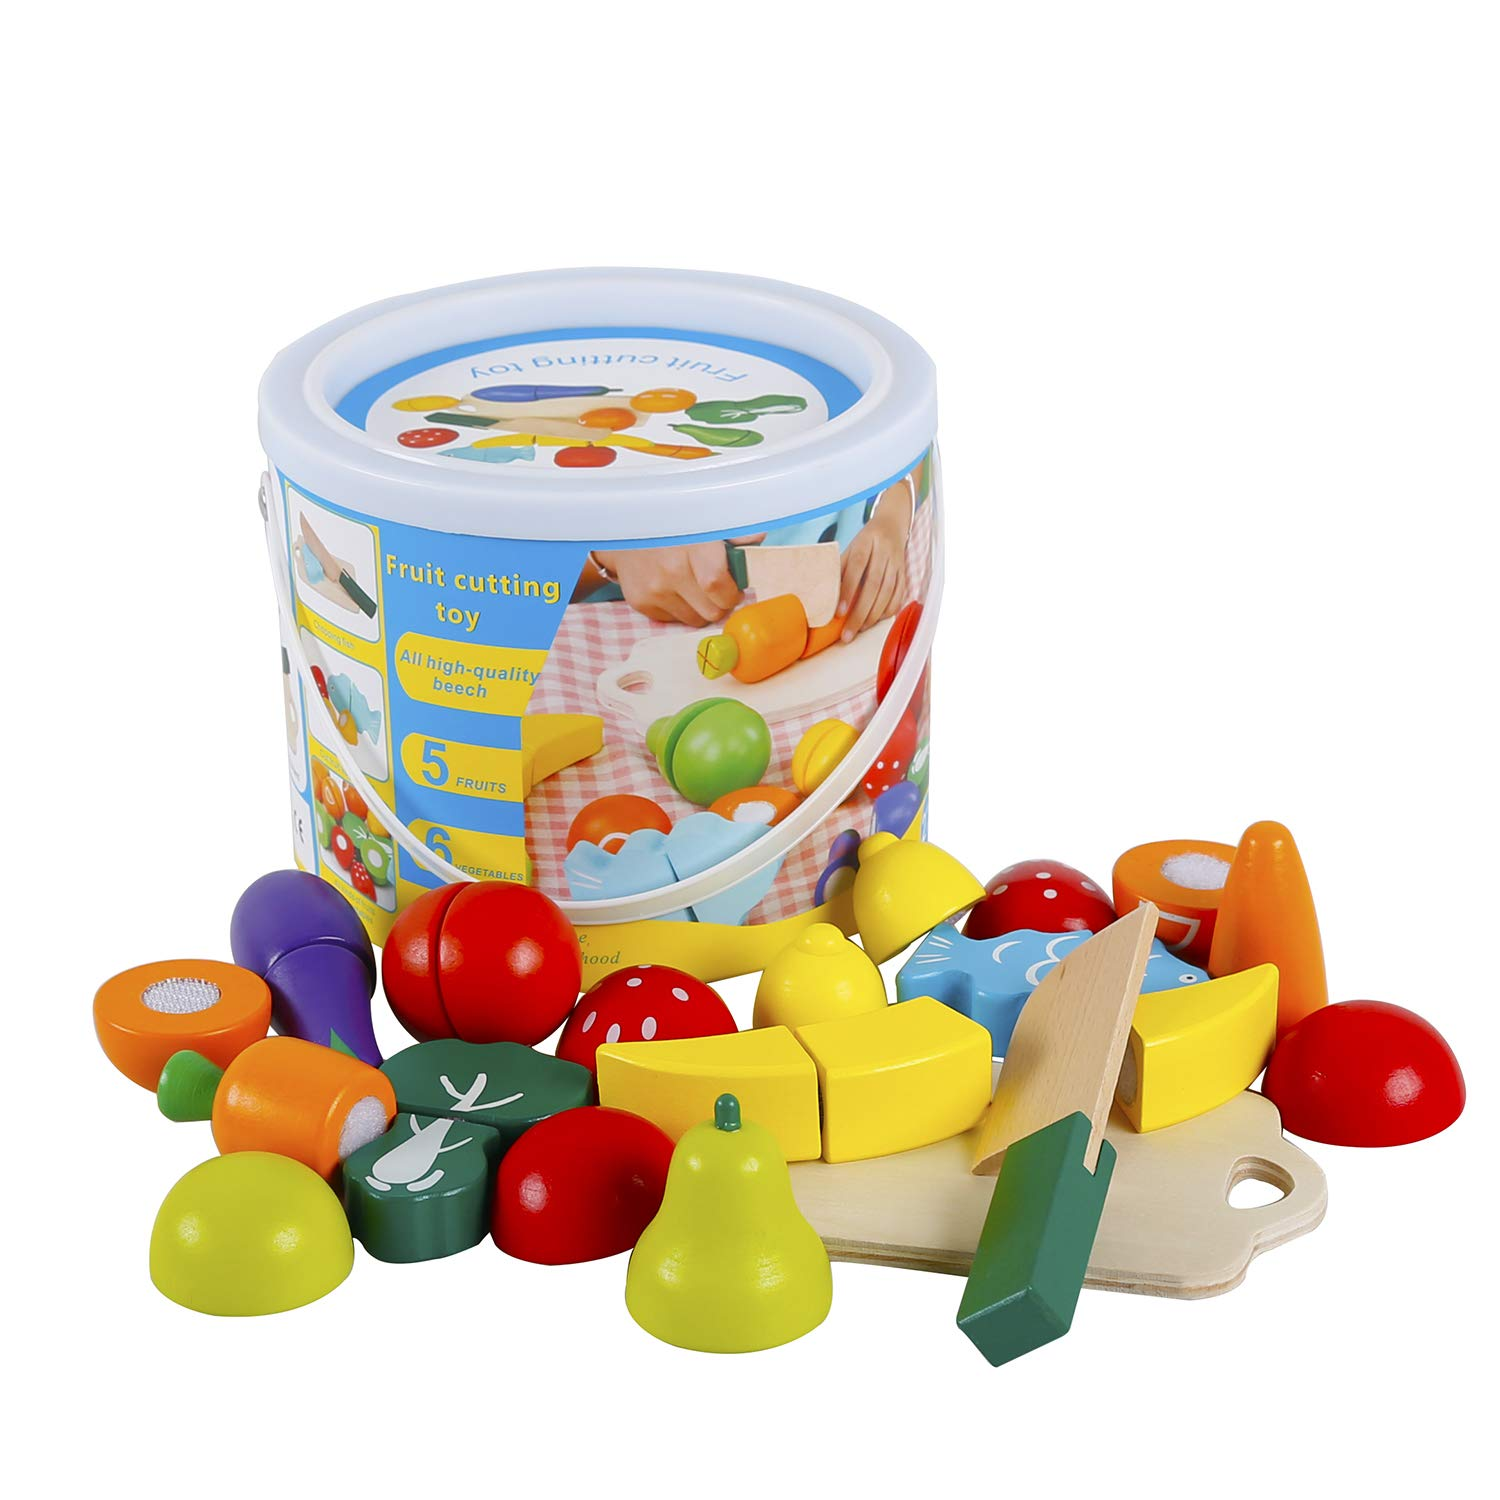 omyzam Play Food for Children Toy Food Sets Wooden Toys Vegetables and Fruits Cutting Set Wooden Kitchen Play Food Educational Toys Pretend Play Food Sets for Kids Boys Girls for Children's Day gifts